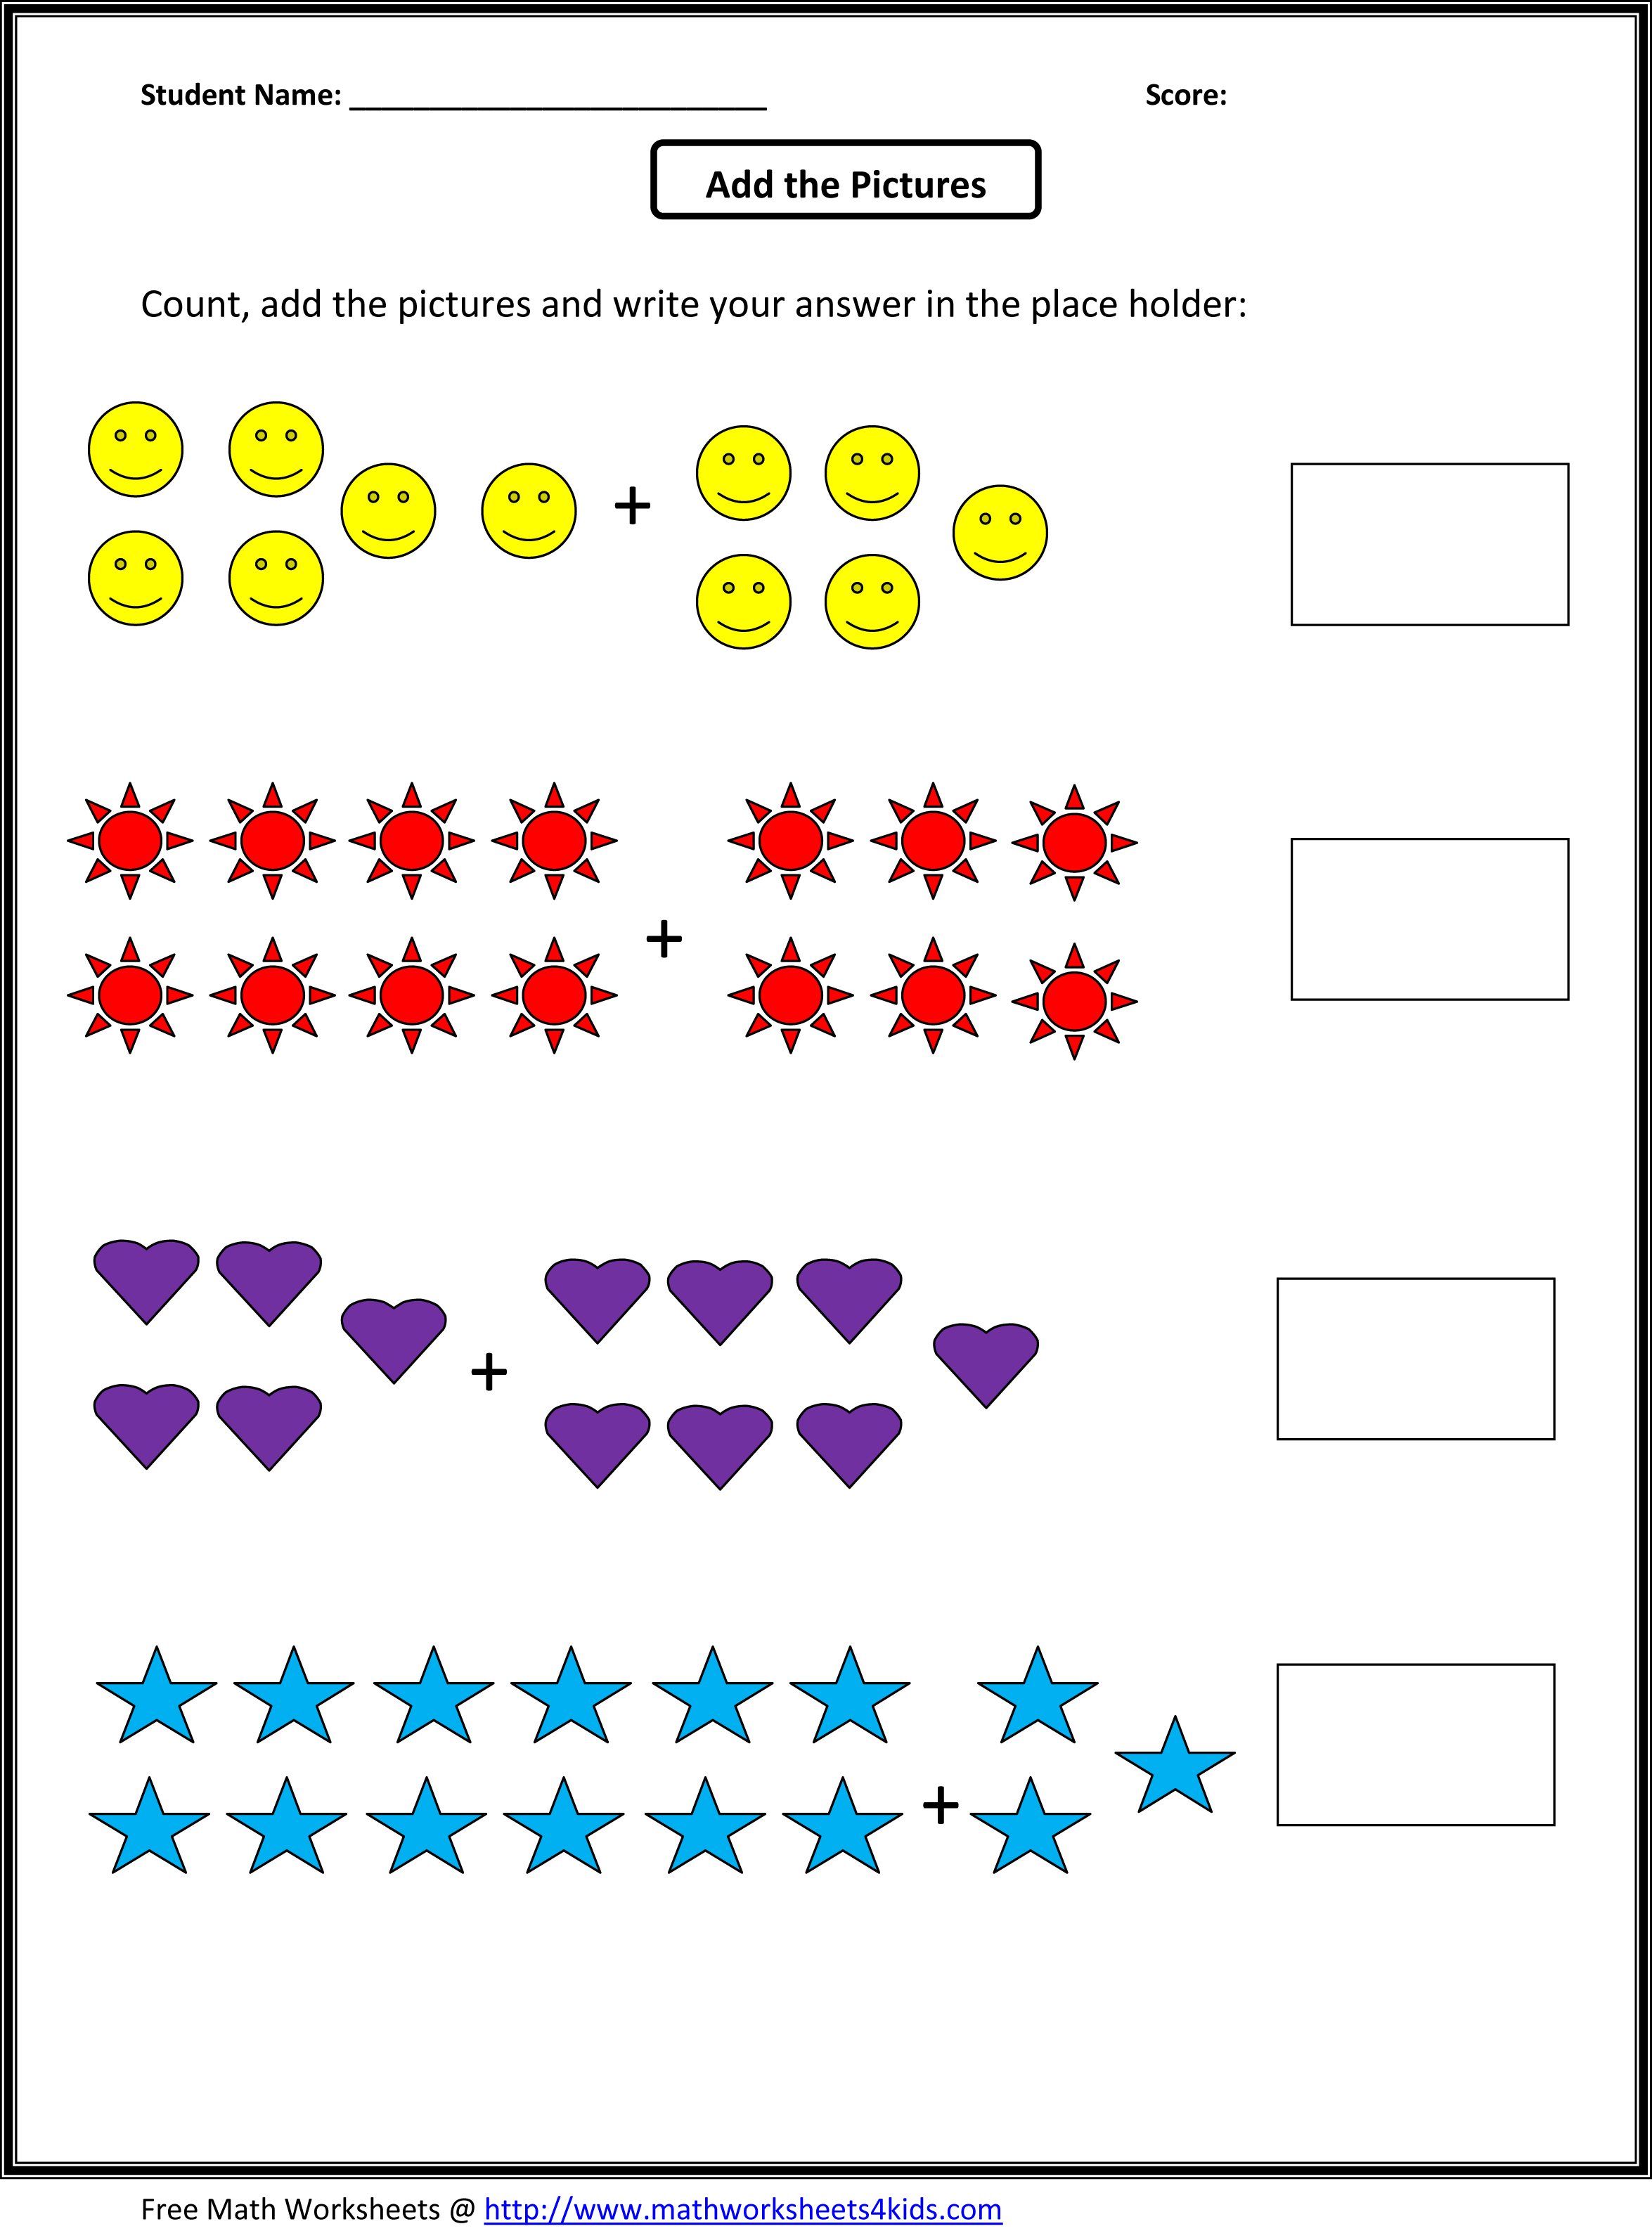 Weirdmailus  Marvelous Grade  Maths Worksheet  Reocurent With Interesting Math Worksheets For St Grade Free  Reocurent With Divine Graphing Numbers On A Number Line Worksheet Also Elapsed Time Worksheets With Clocks In Addition Battleship Worksheet And Math Worksheet With Answers As Well As Free States And Capitals Worksheets Additionally Activity Worksheets For Kindergarten From Reocurentcom With Weirdmailus  Interesting Grade  Maths Worksheet  Reocurent With Divine Math Worksheets For St Grade Free  Reocurent And Marvelous Graphing Numbers On A Number Line Worksheet Also Elapsed Time Worksheets With Clocks In Addition Battleship Worksheet From Reocurentcom